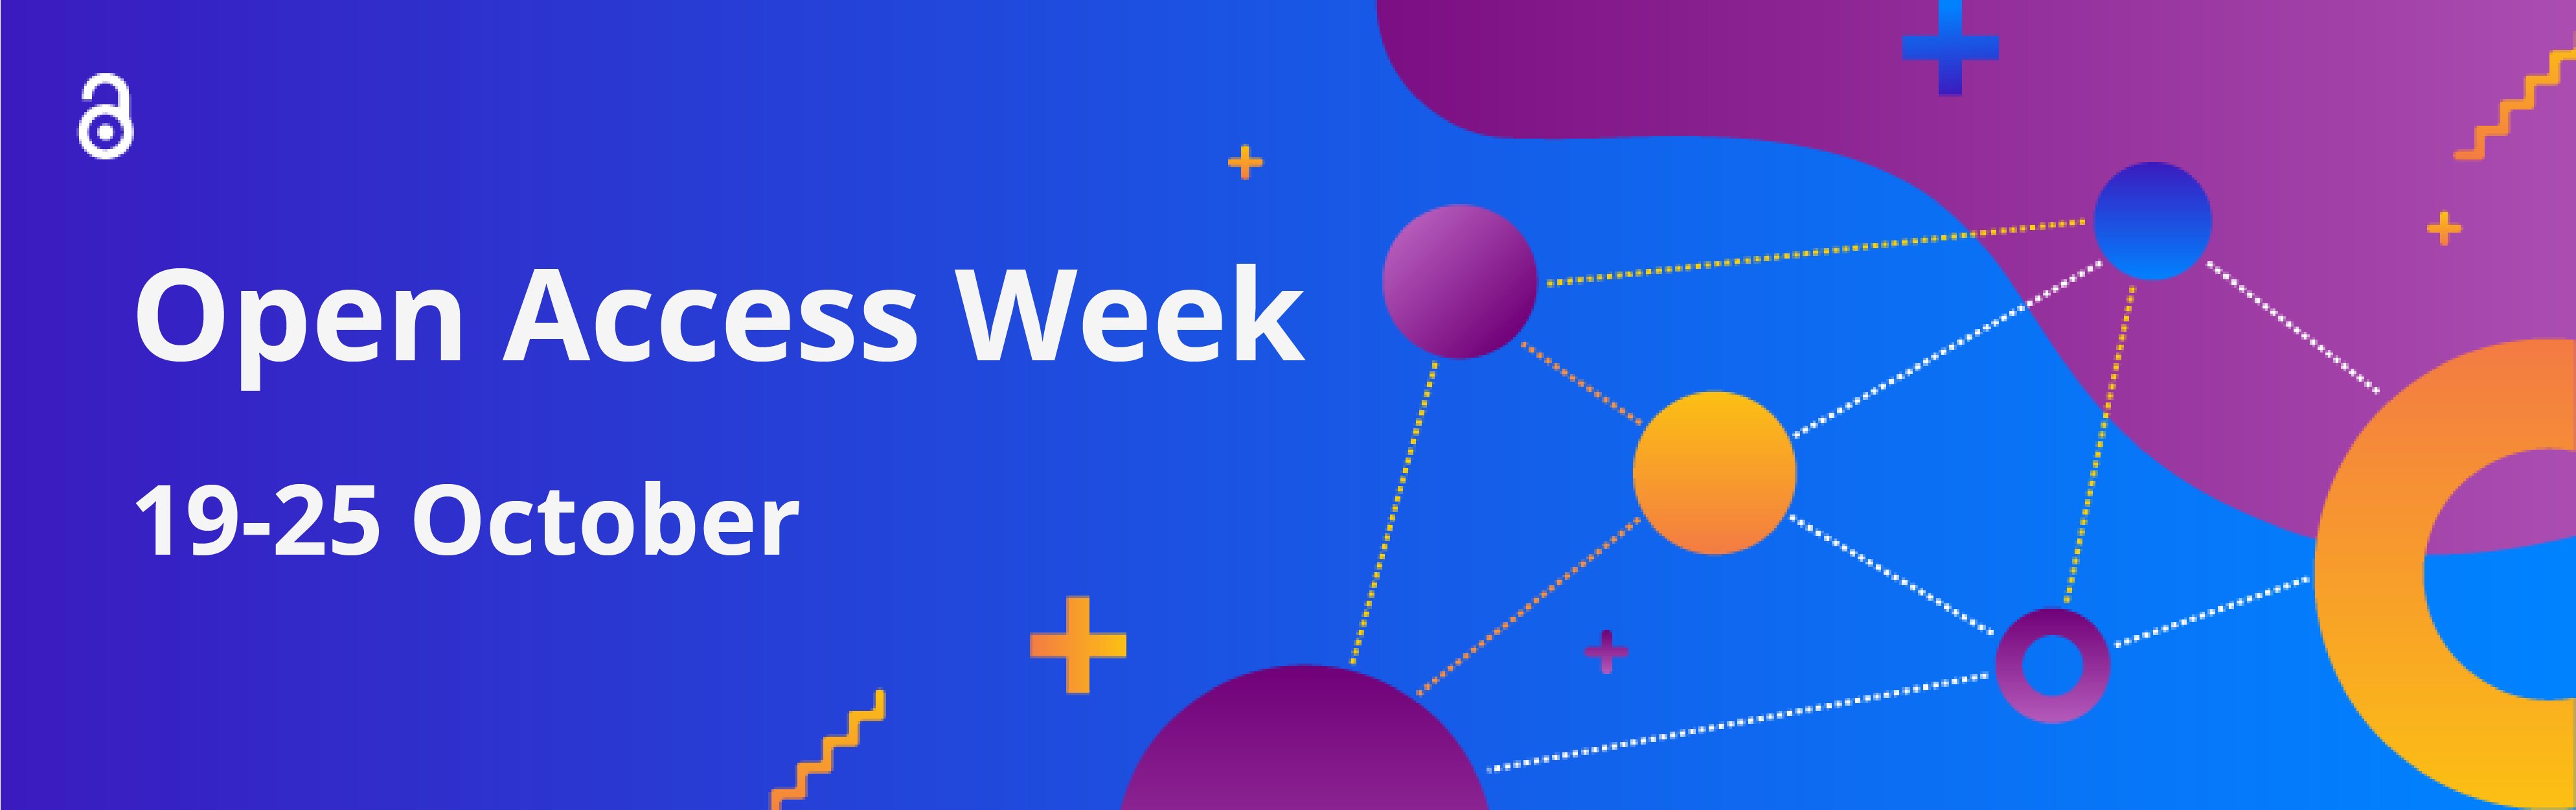 Open Access Week 19 - 25 October with logo